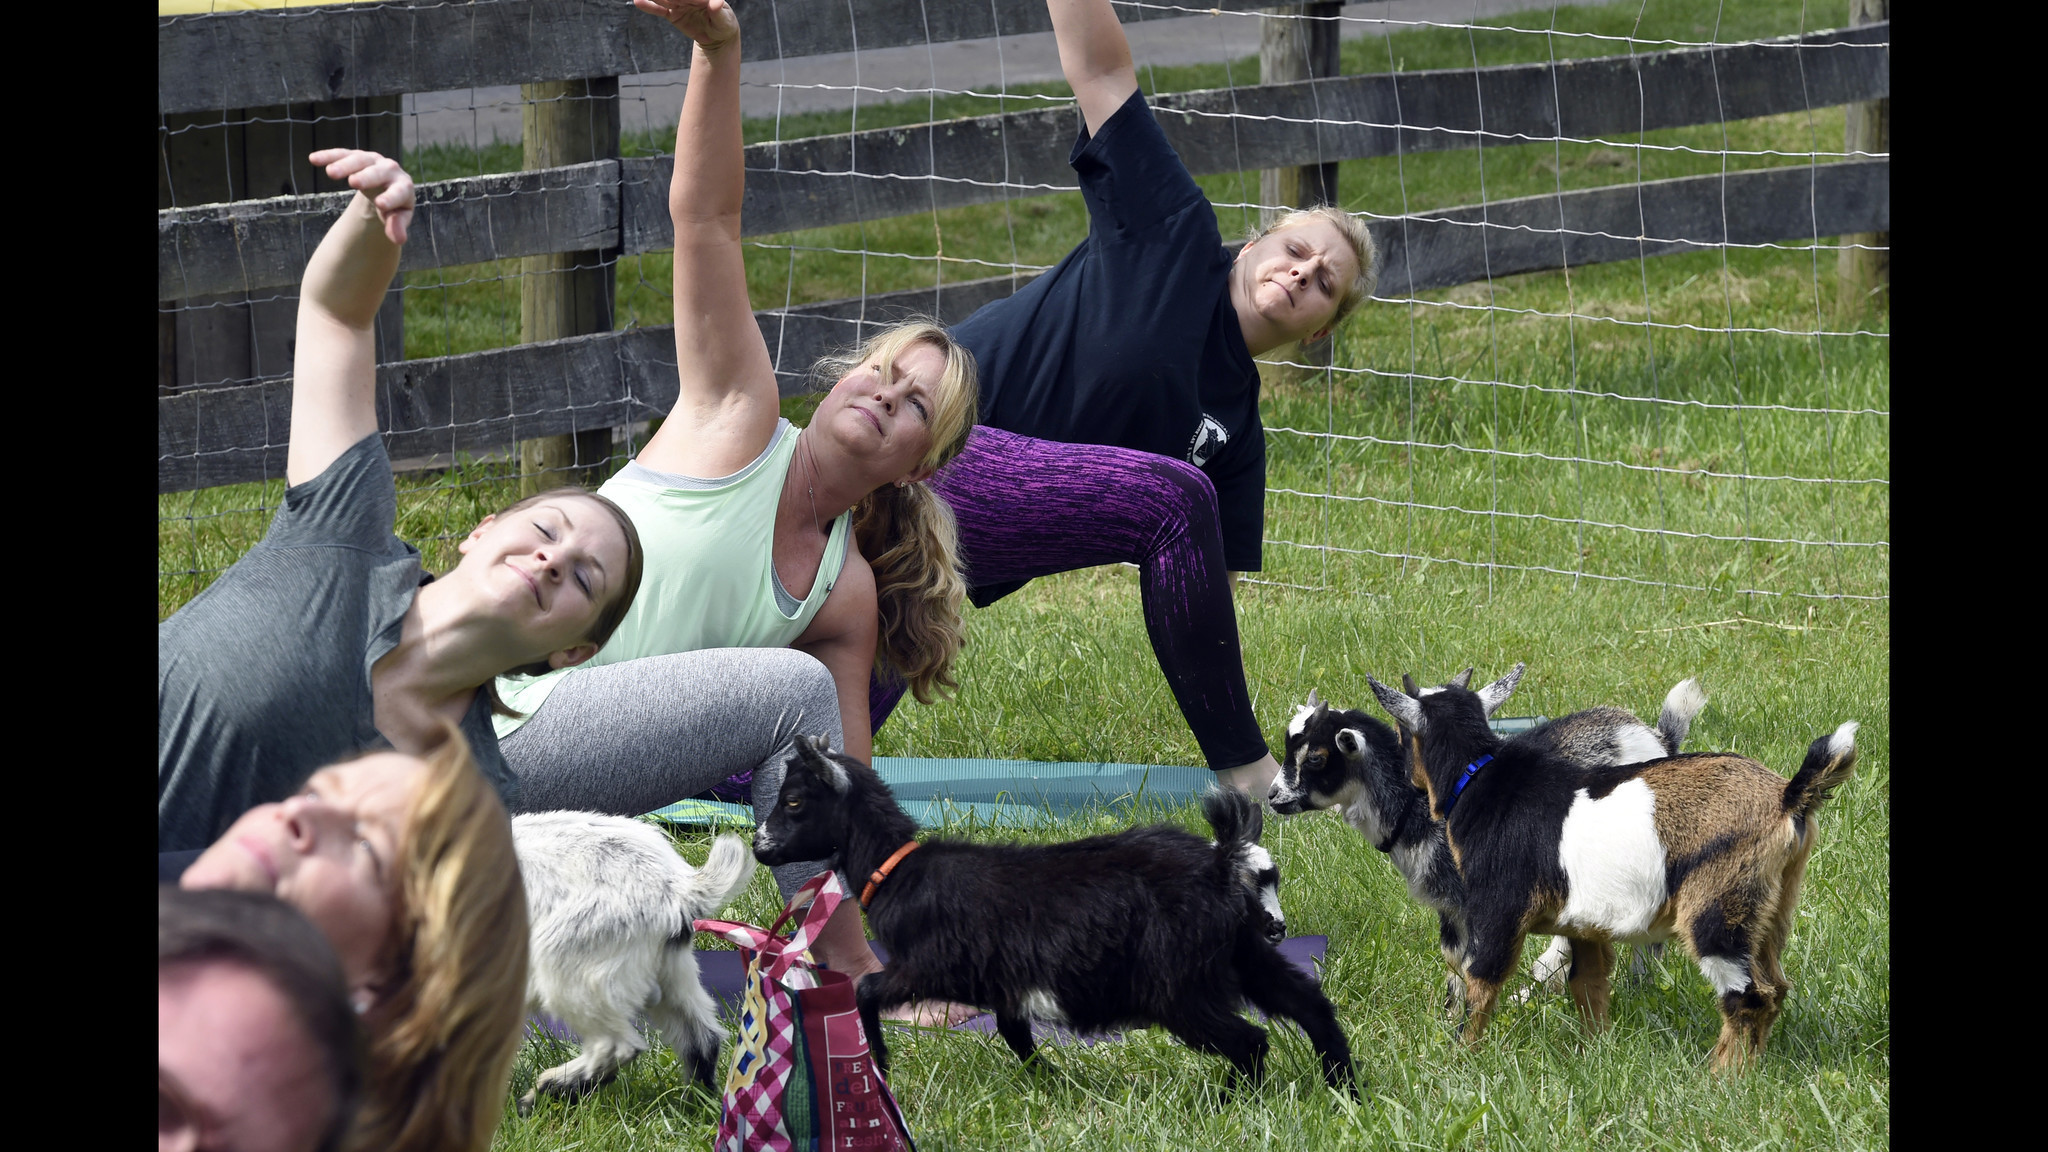 Herd Mentality Goat Yoga Is Gaining Popularity In